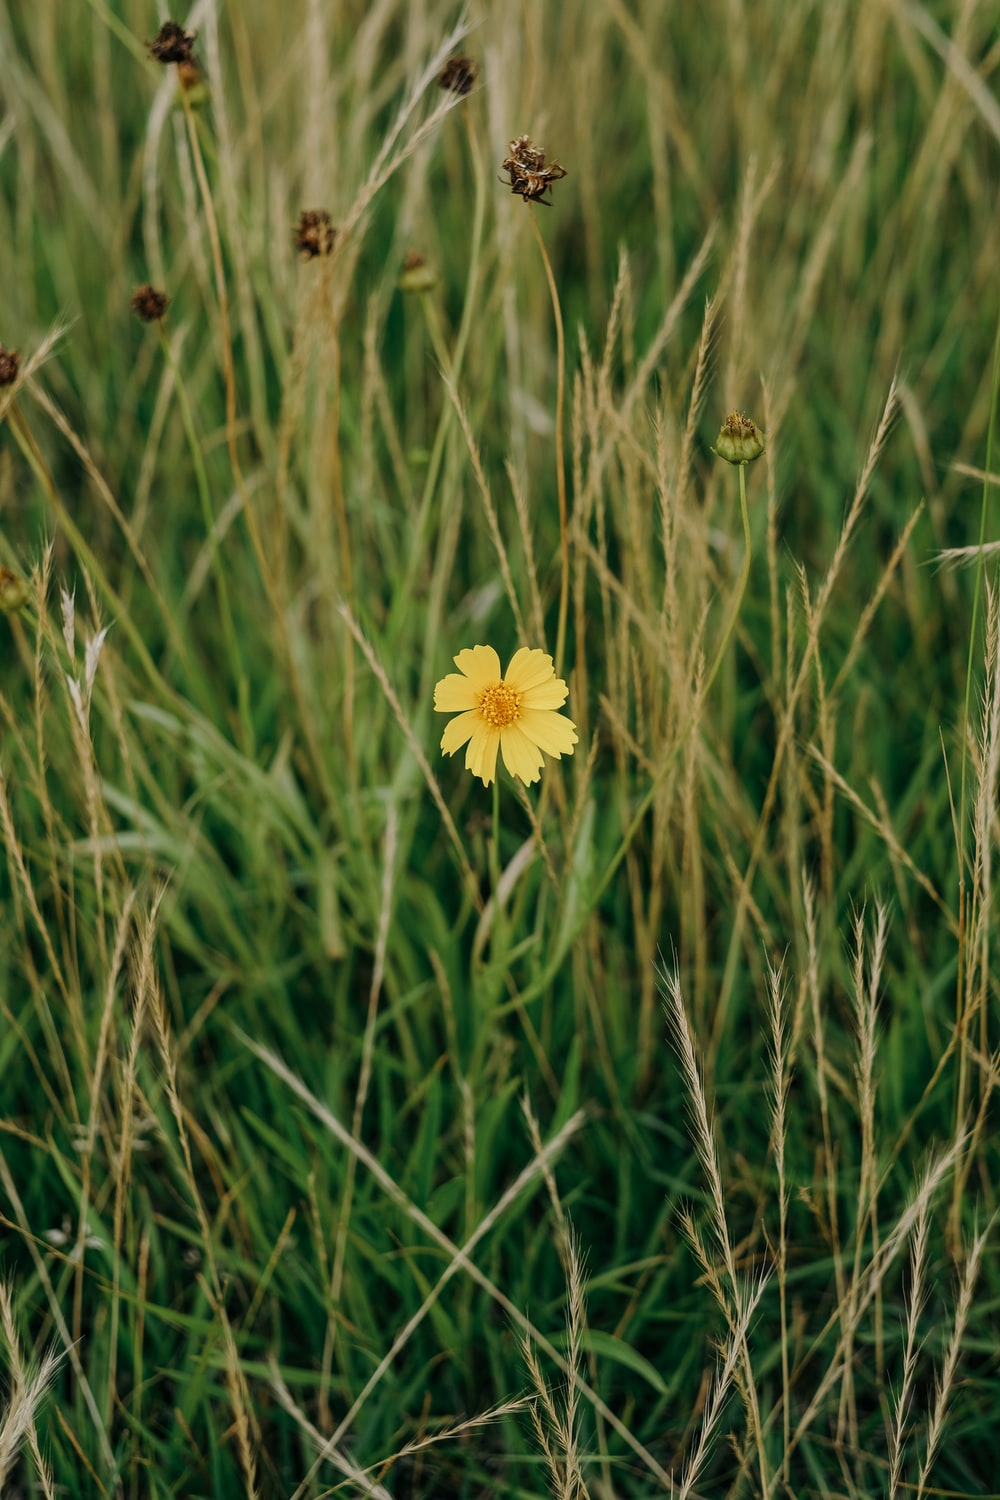 white and yellow flower on green grass field